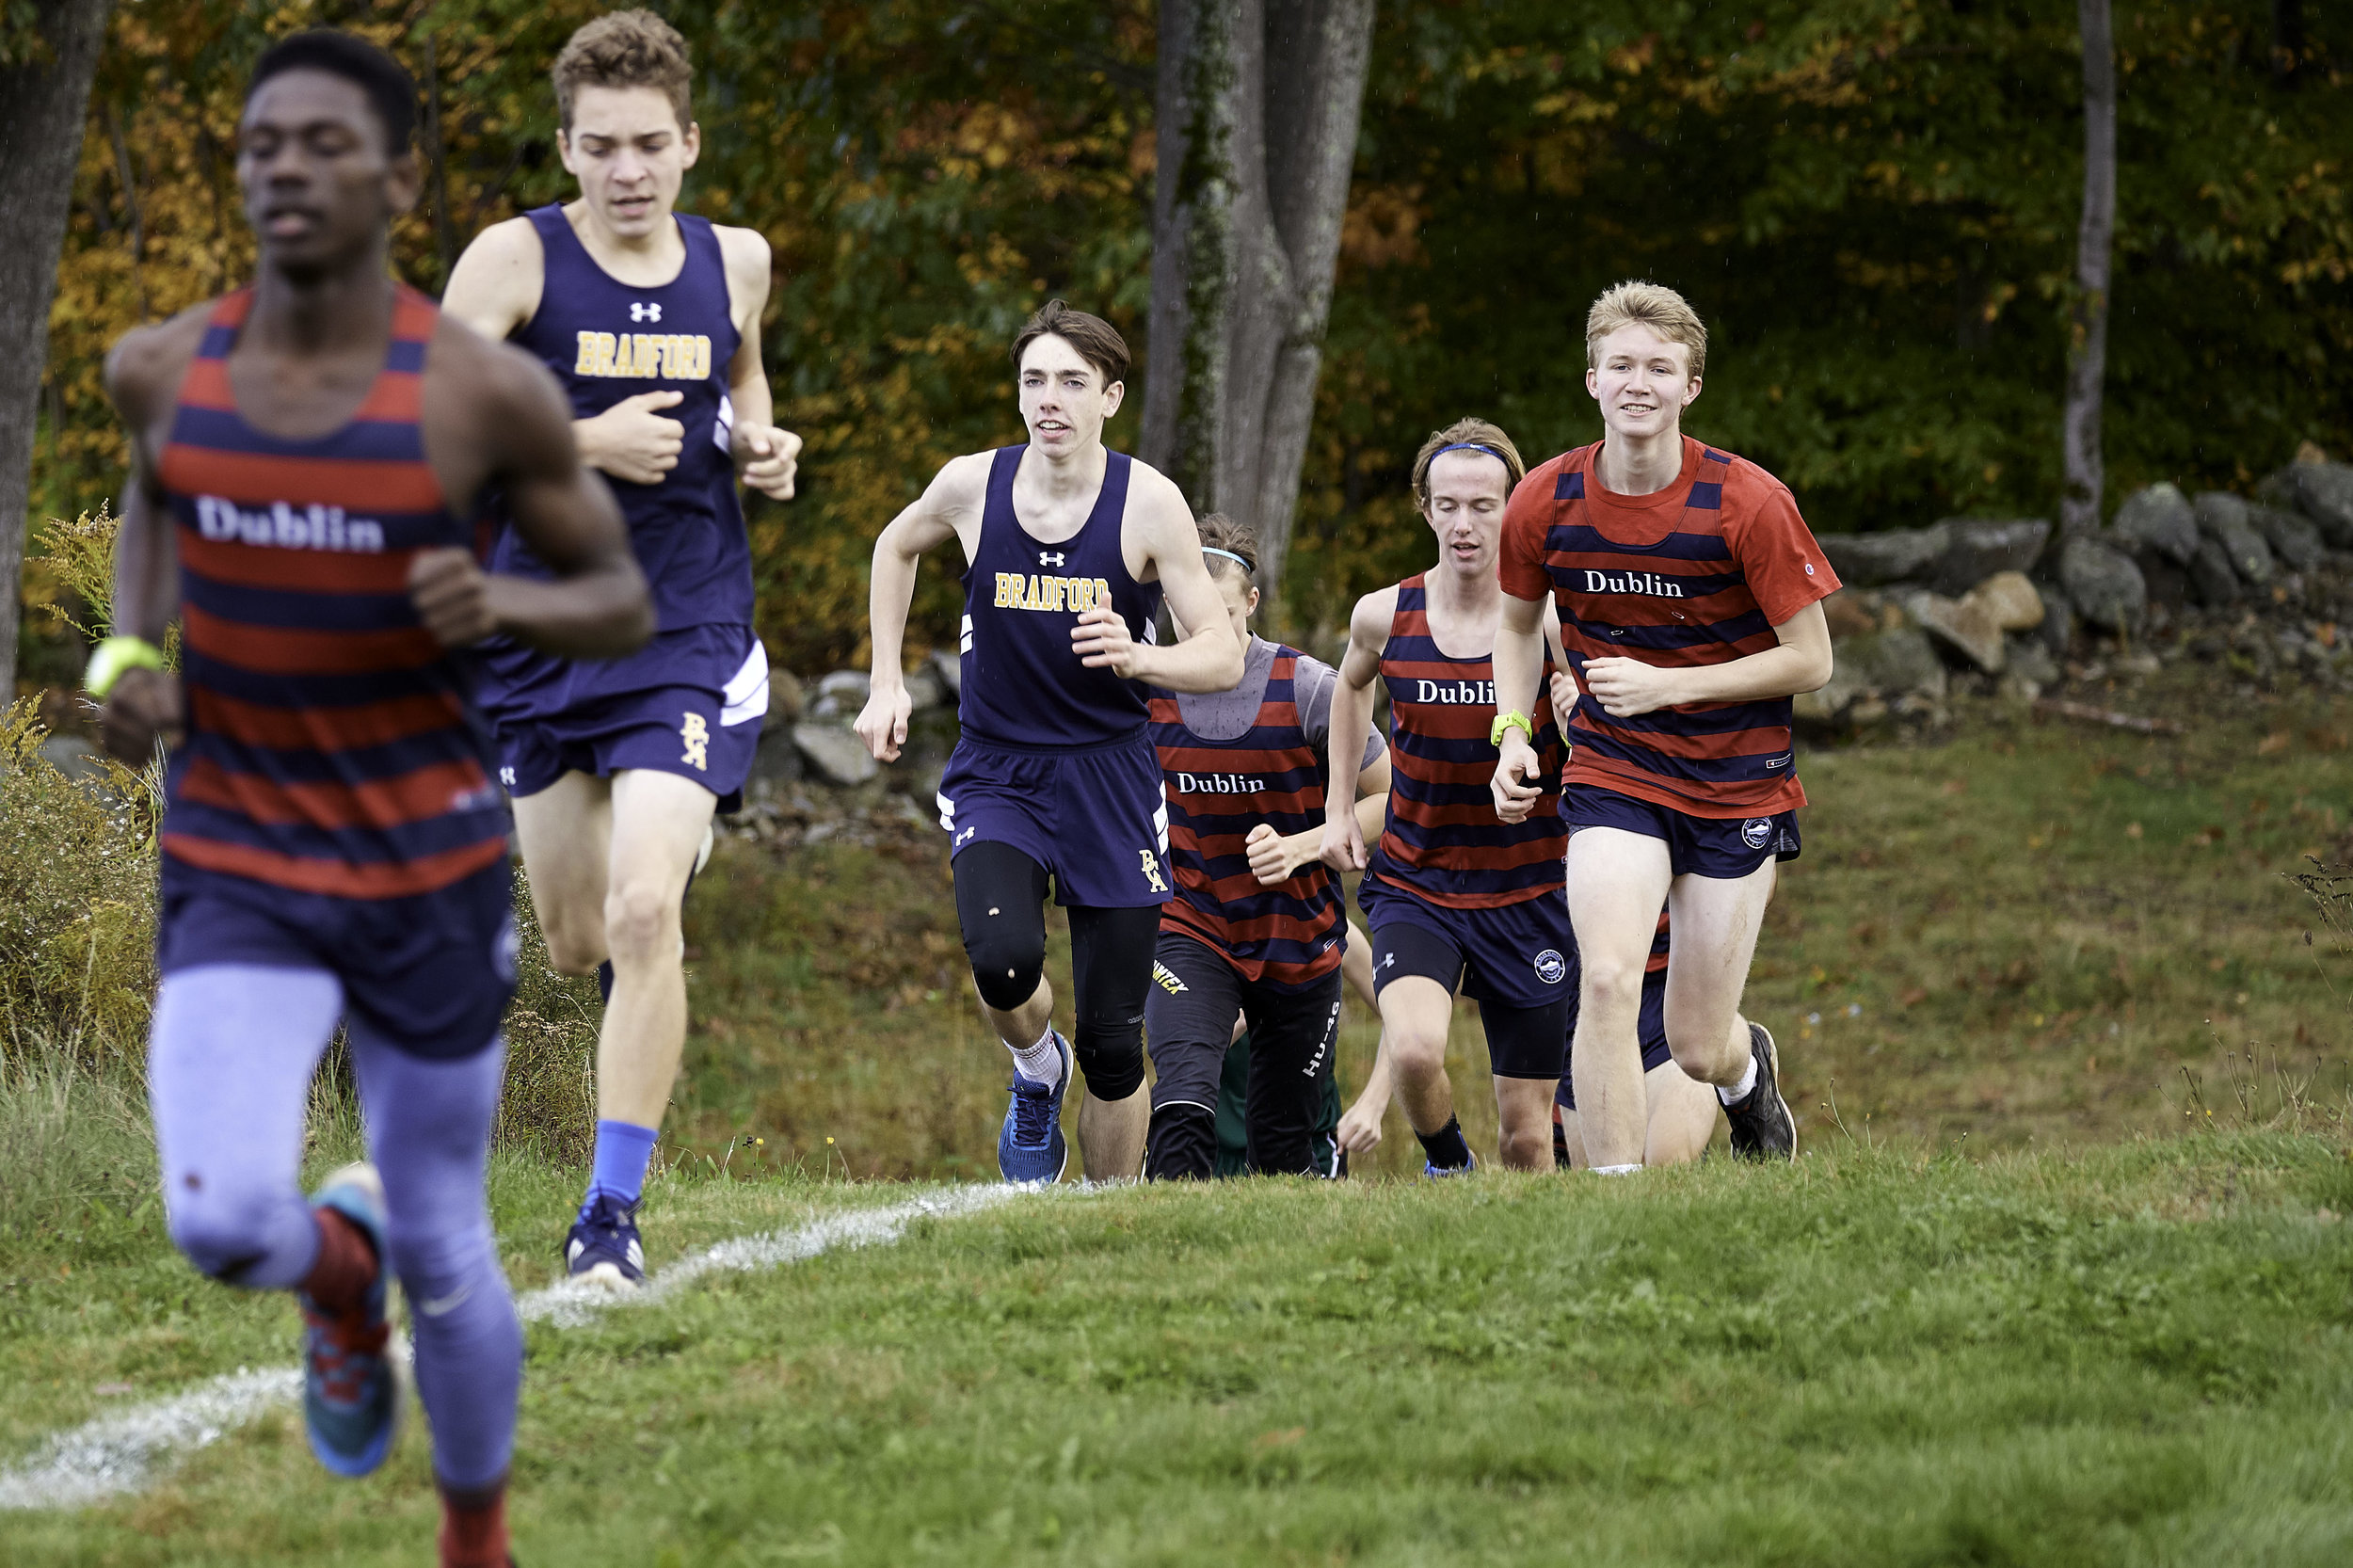 Dublion Invitational - October 12, 2018 - 136441.jpg